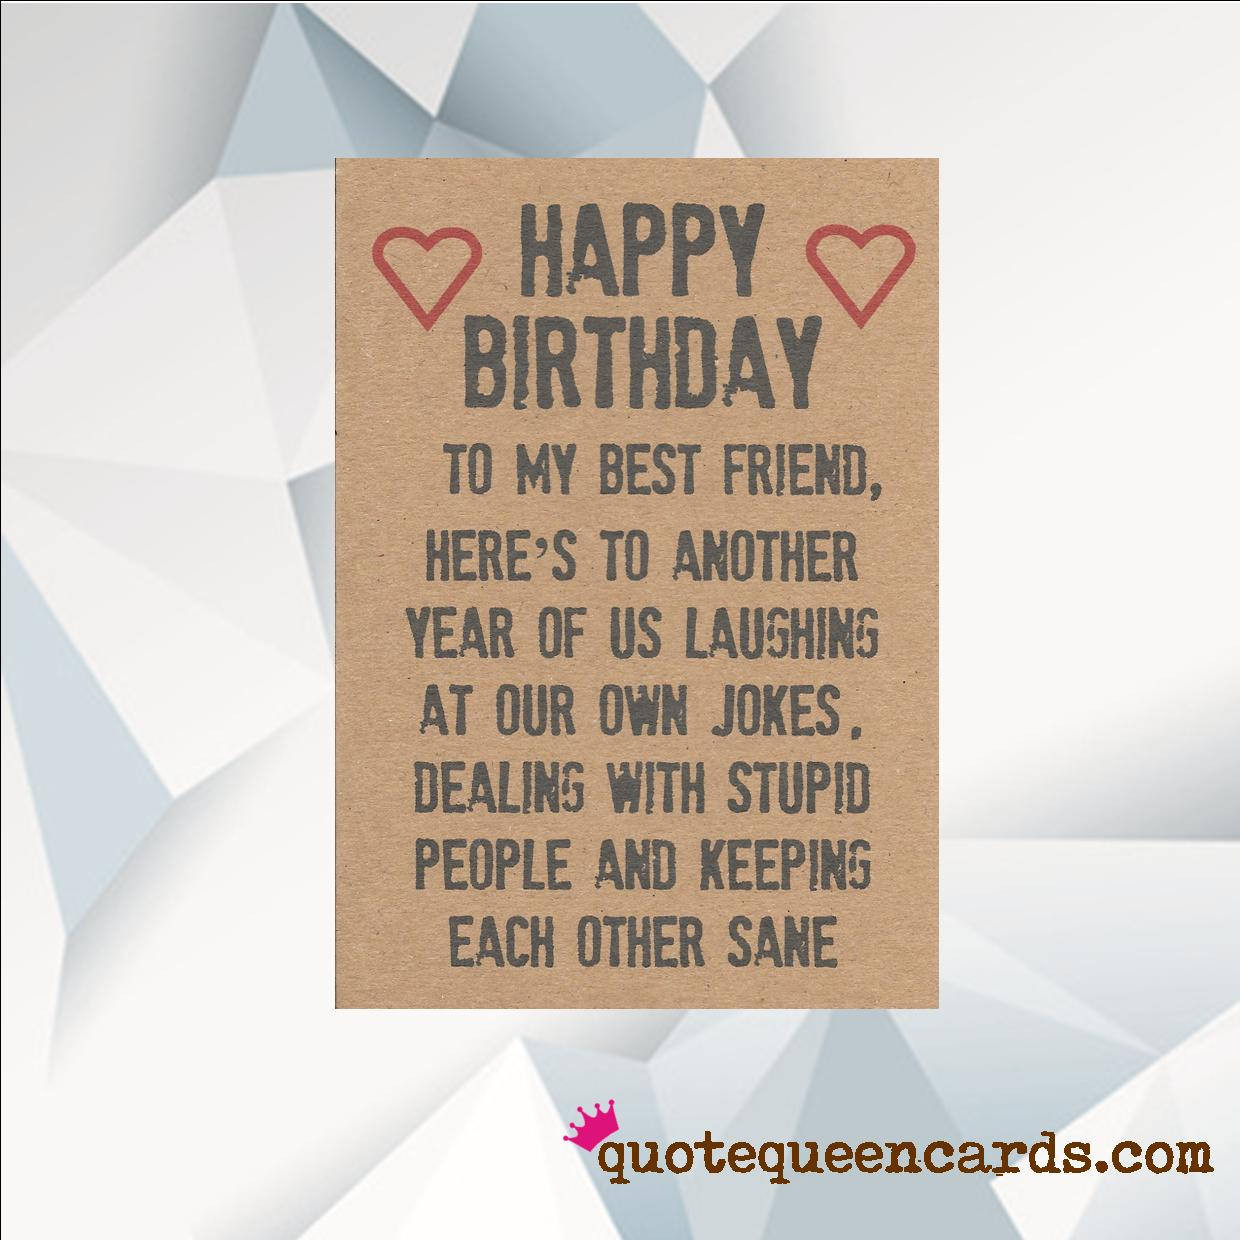 Best ideas about Happy Birthday Funny Friend . Save or Pin Happy Birthday BEST FRIEND Funny Birthday Card For Friend Now.